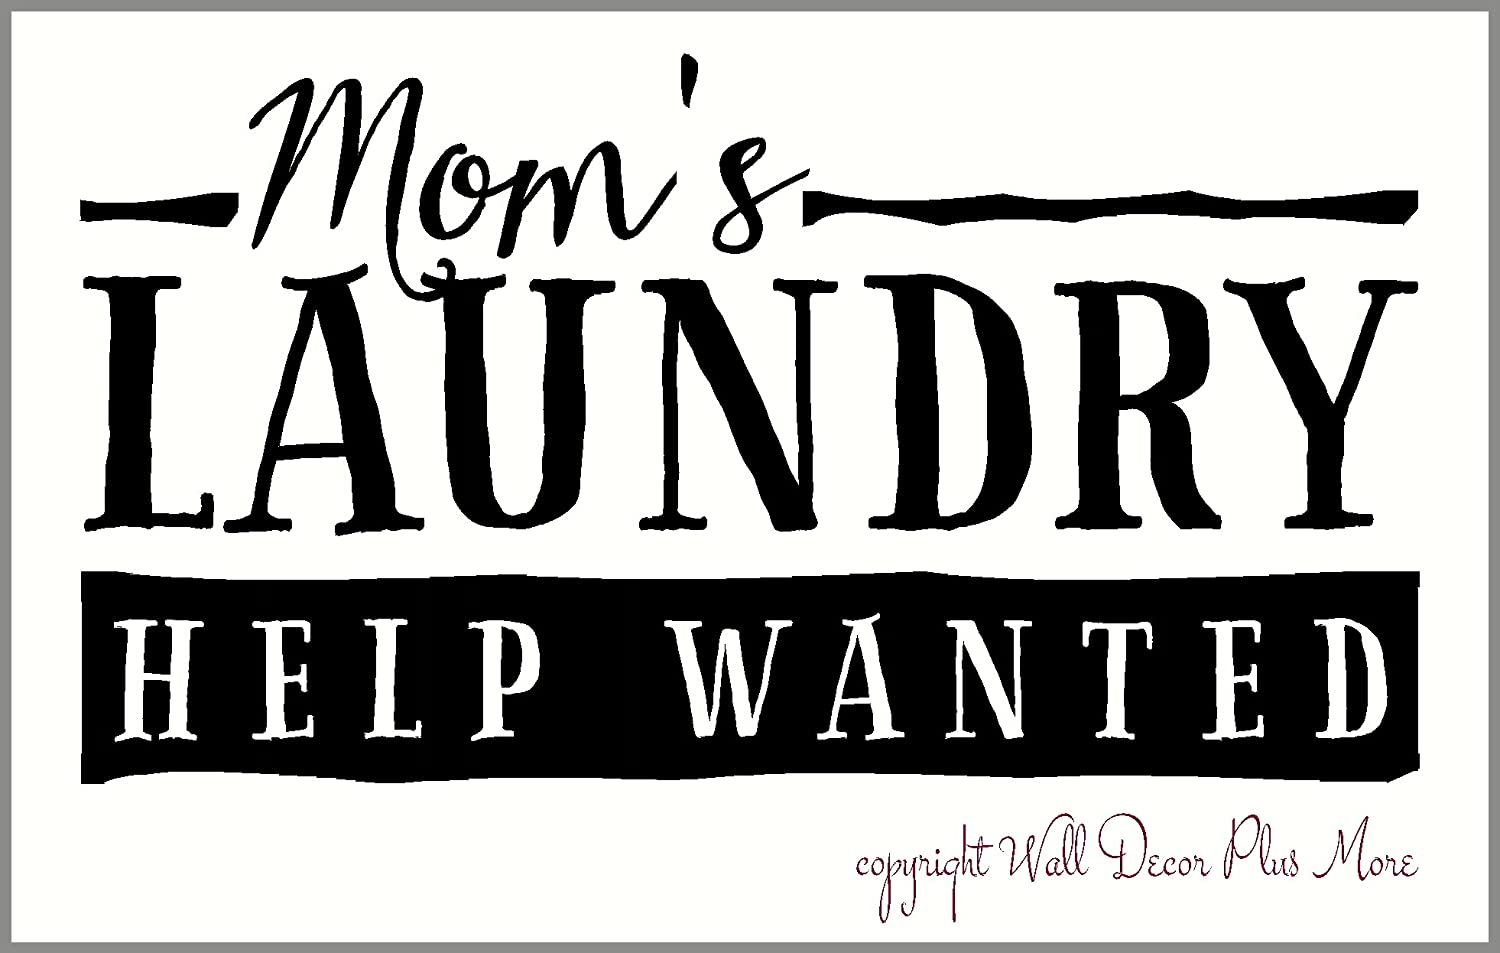 Wall Decor Plus More WDPM3367 Moms Laundry Help Wanted Funny Wall Decal Home Decor Quote Black 23 x 13-Inch